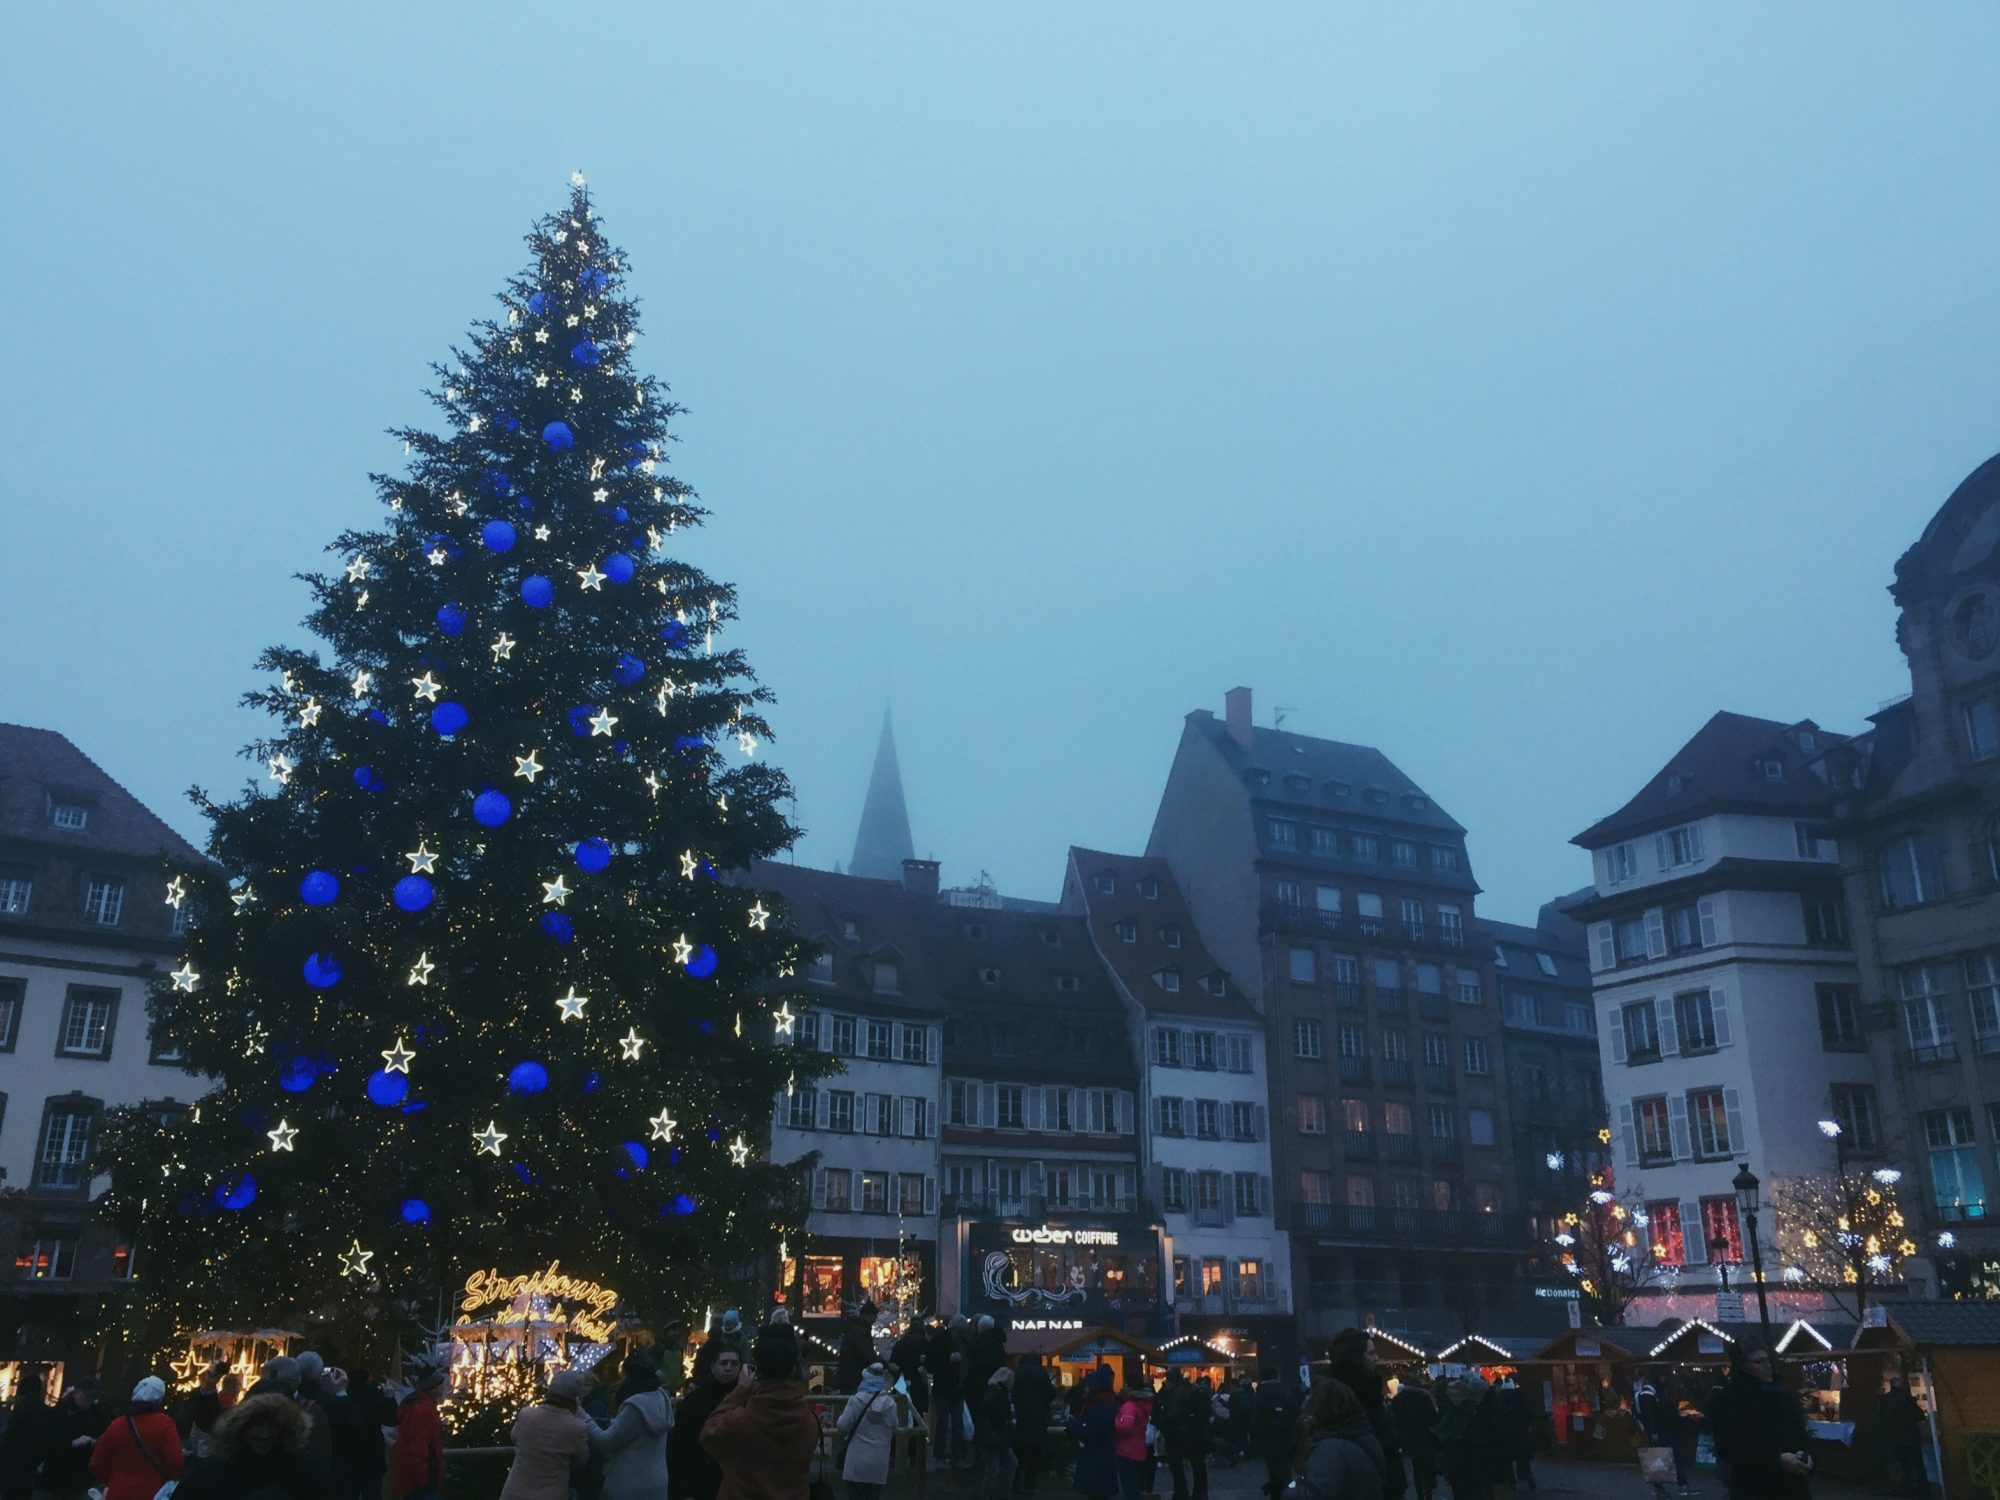 The Strasbourg Christmas market.